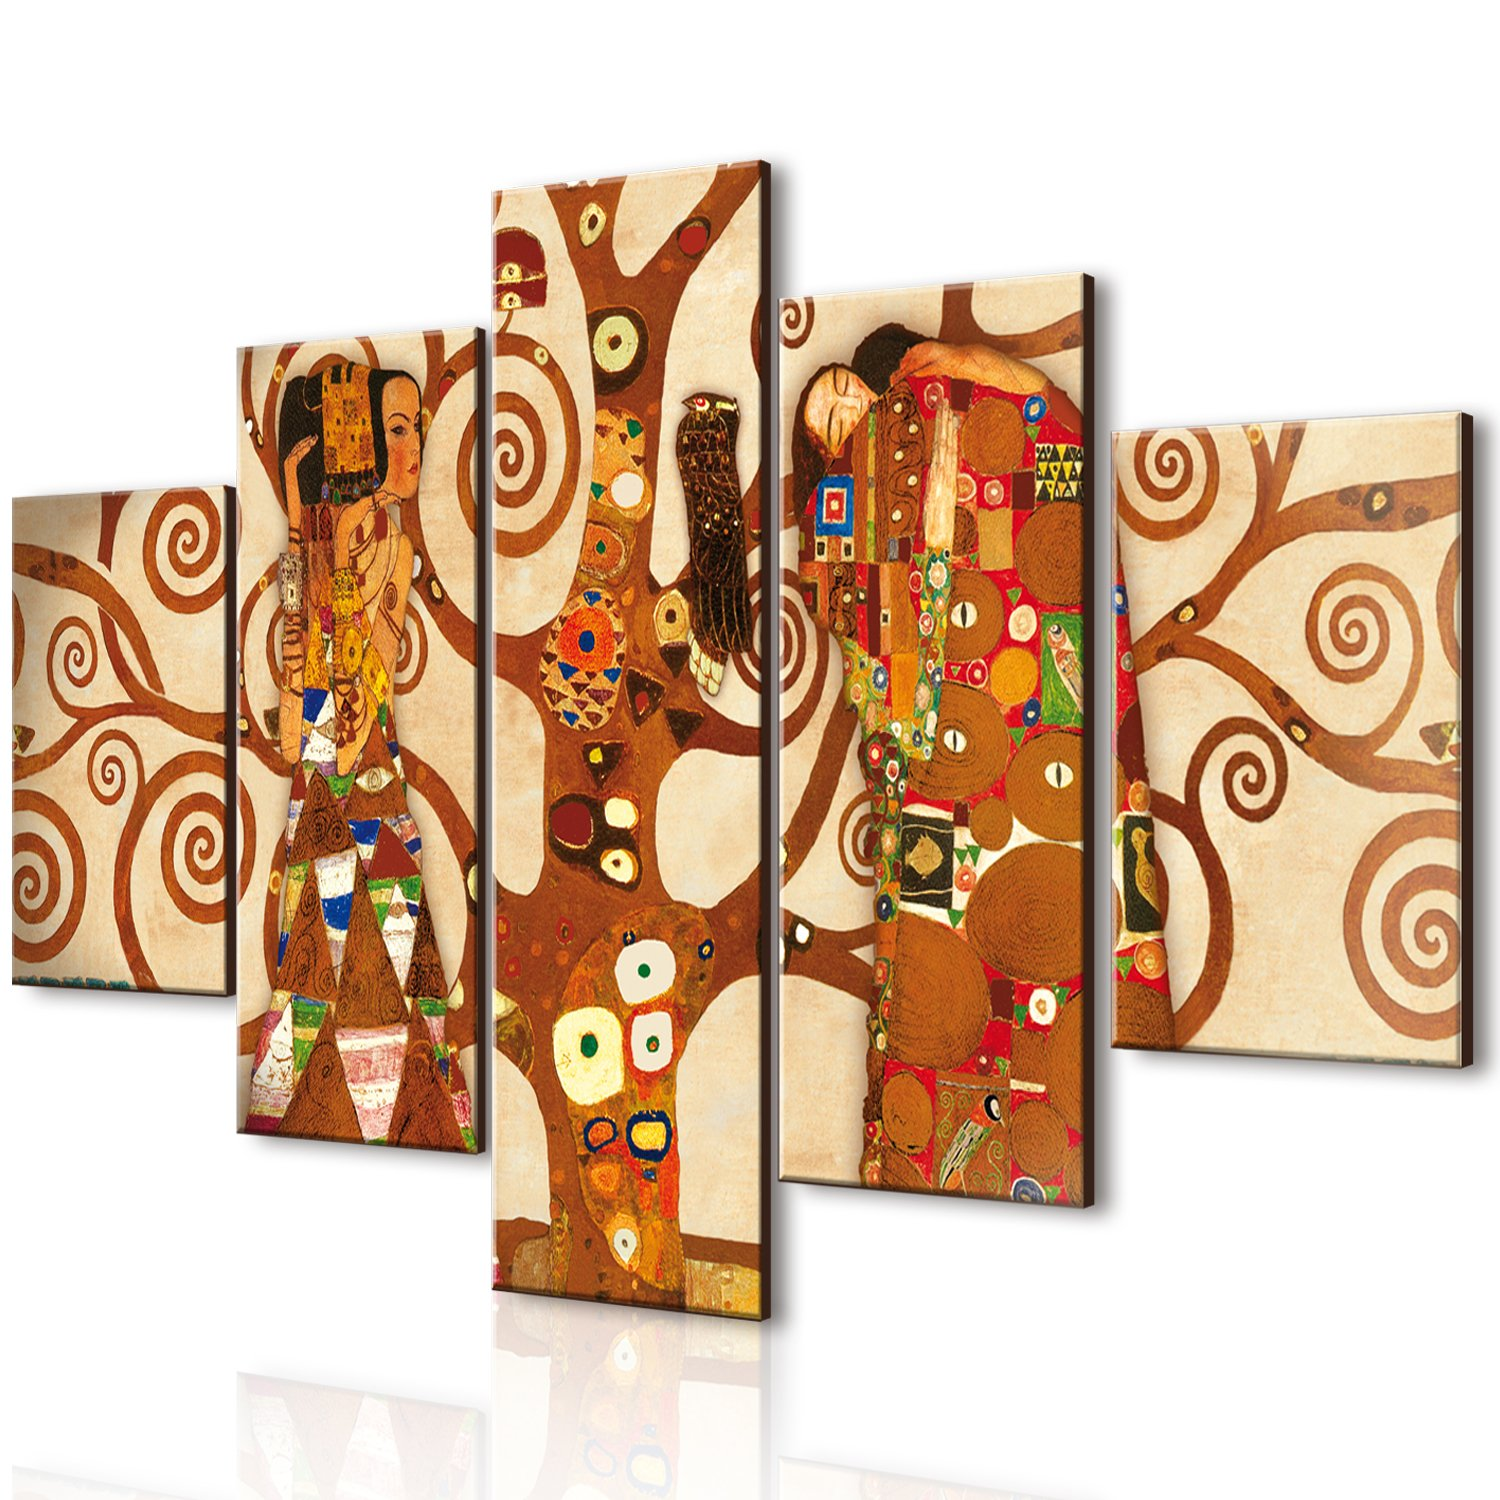 Lupia Vogue Multi-Panel Tree of Life Painting, Wood, Multicoloured, 66 x 115 x 0.8 cm Lupia s.r.l. 8016123060175